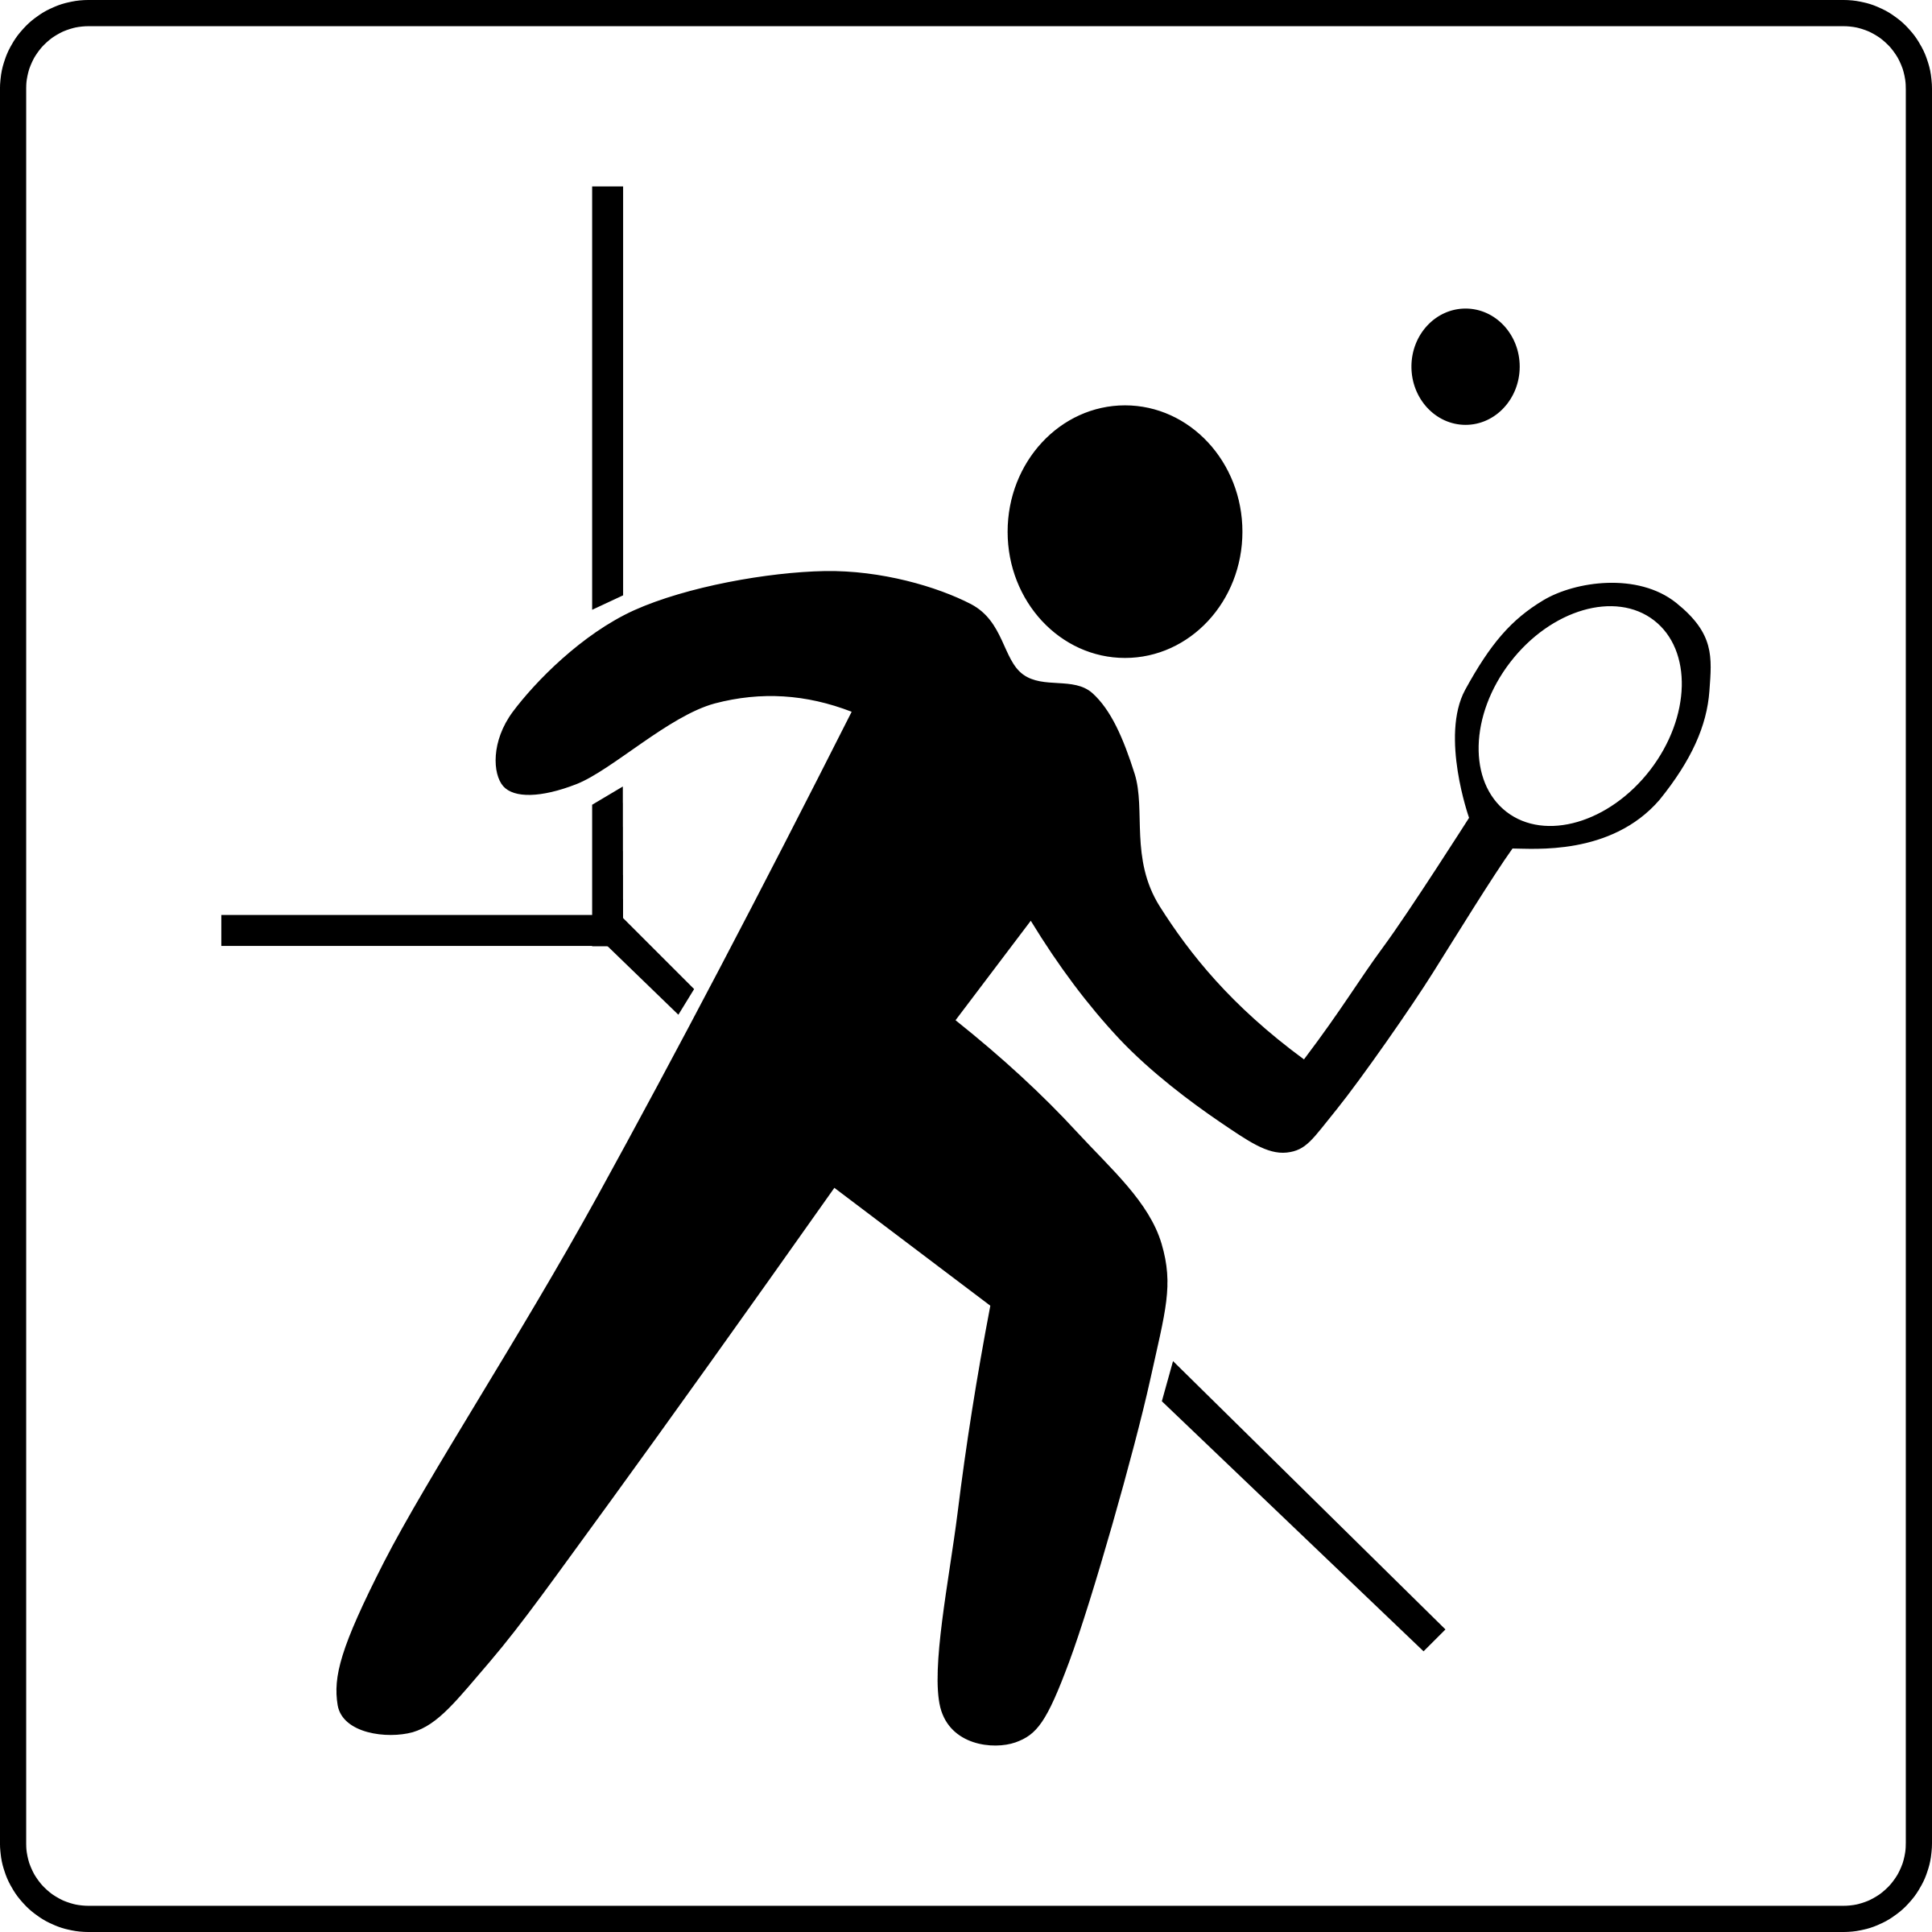 Drawing sport clipart. Squash pencil and in